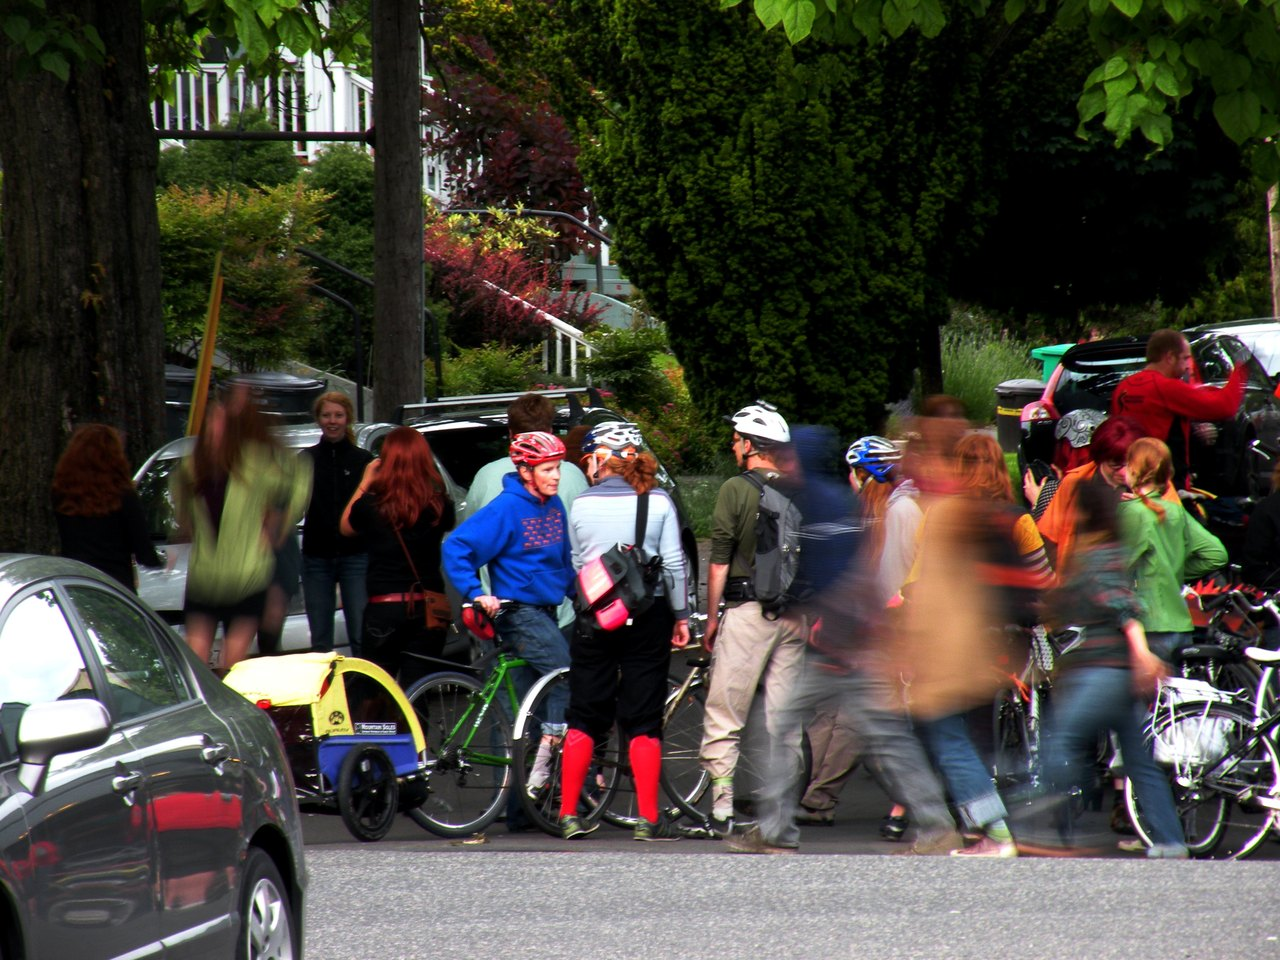 it's pedalpalooza in portland right now. awesome. and the ginger ride (red heads unite) was meeting up at the bar by my house